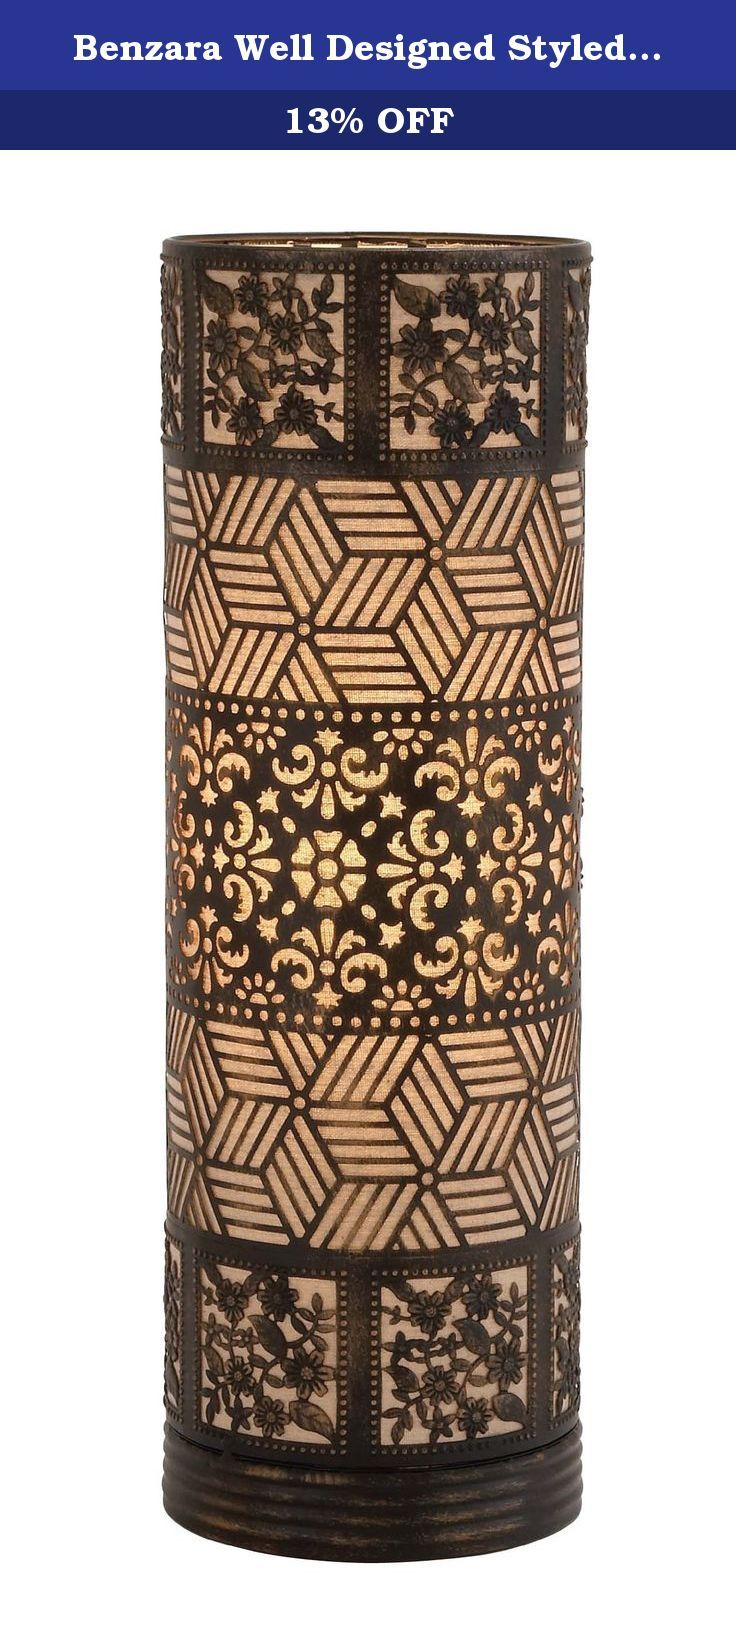 Benzara Well Designed Styled Metal Cylinder Table Lamp. Brighten up your space by adding this cylinder table lamp. The table lamp is cylindrical shaped made of quality metal that will last for years. This table lamp features brown designs amid of which you can add a candle of your choice and brighten up your space. The table lamp will steal the spotlight and flourish your ambience with lights. You can add this table lamp to your living space.